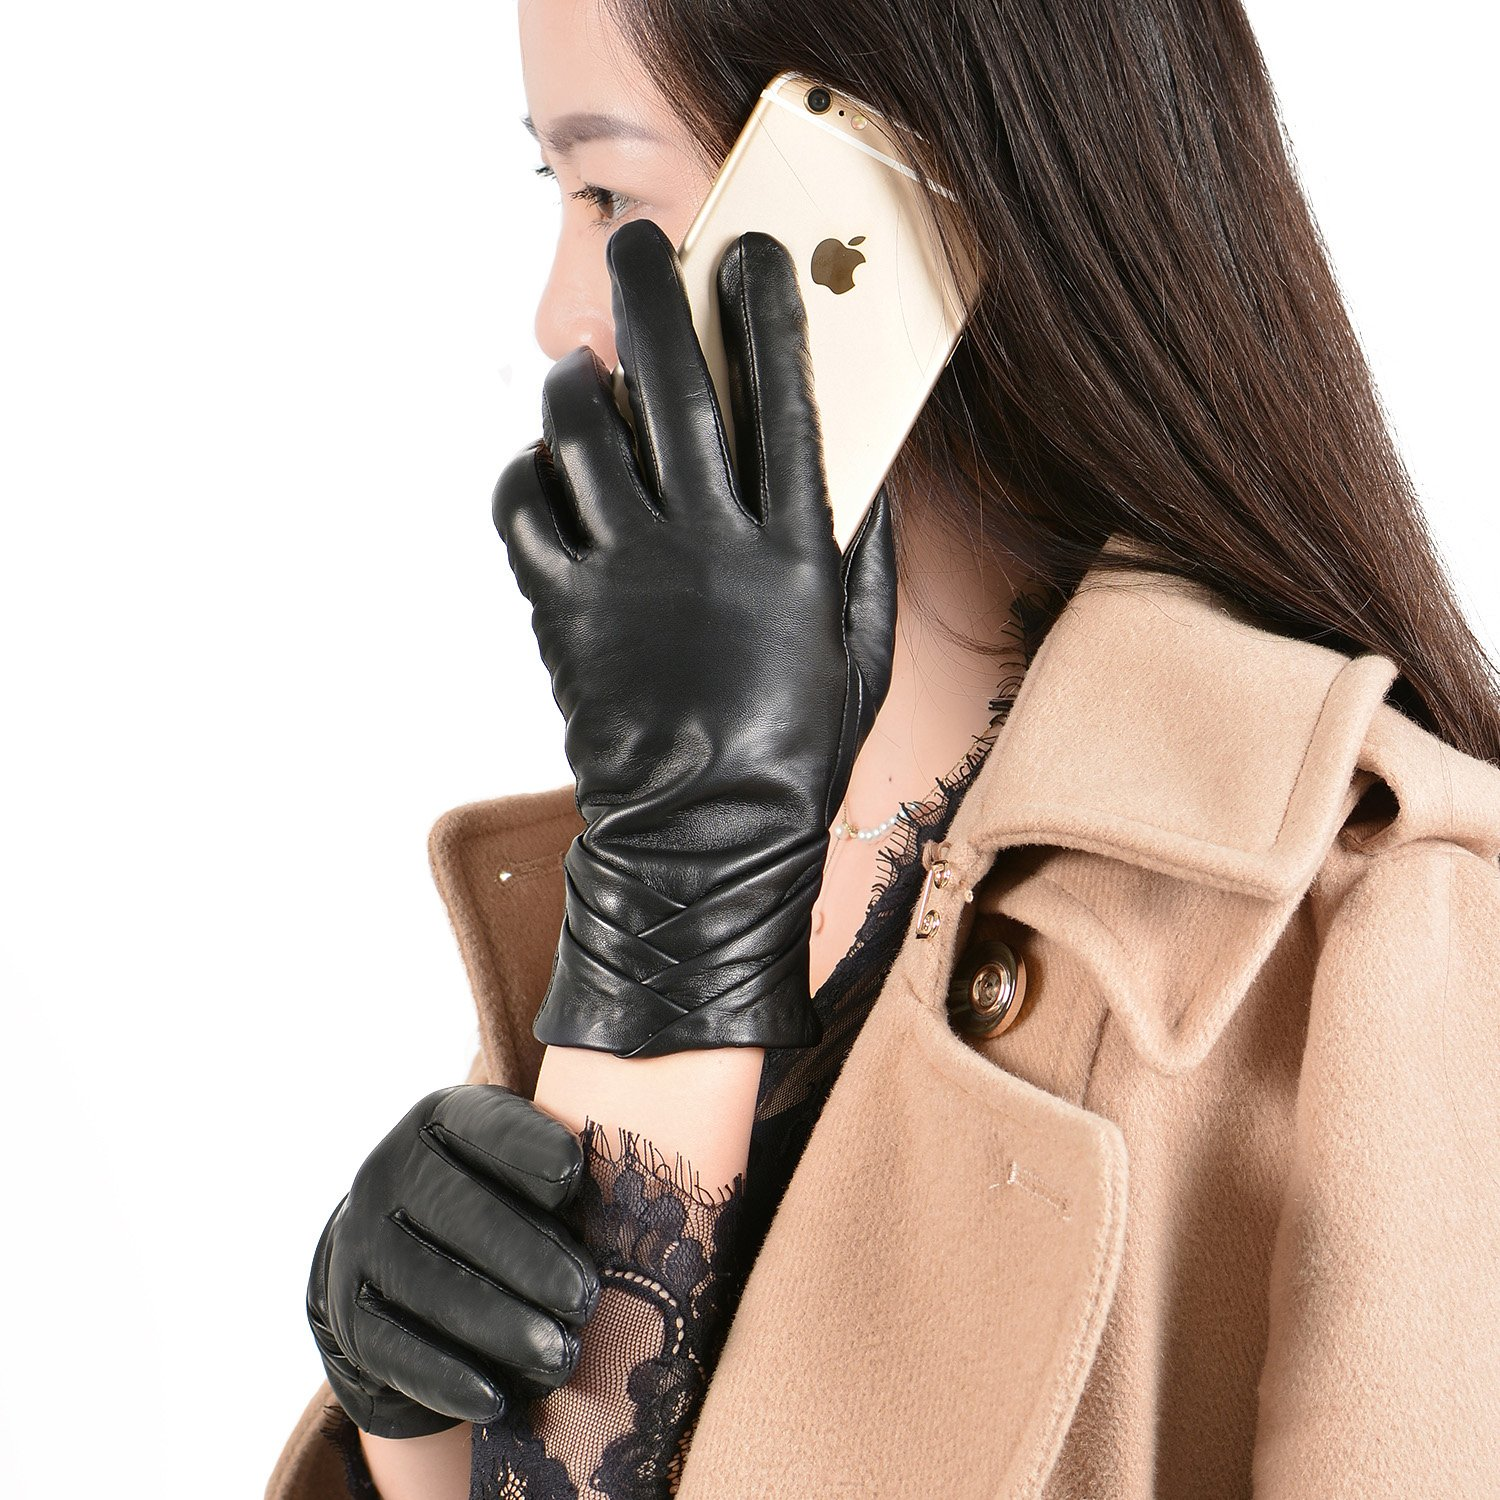 Ladies real leather gloves - Gsg Original Design Womens Touchscreen Gloves Spain Genuine Nappa Leather Winter Driving Texting Trendy Ruched Warm Wool Lining Or Faux Fur At Amazon